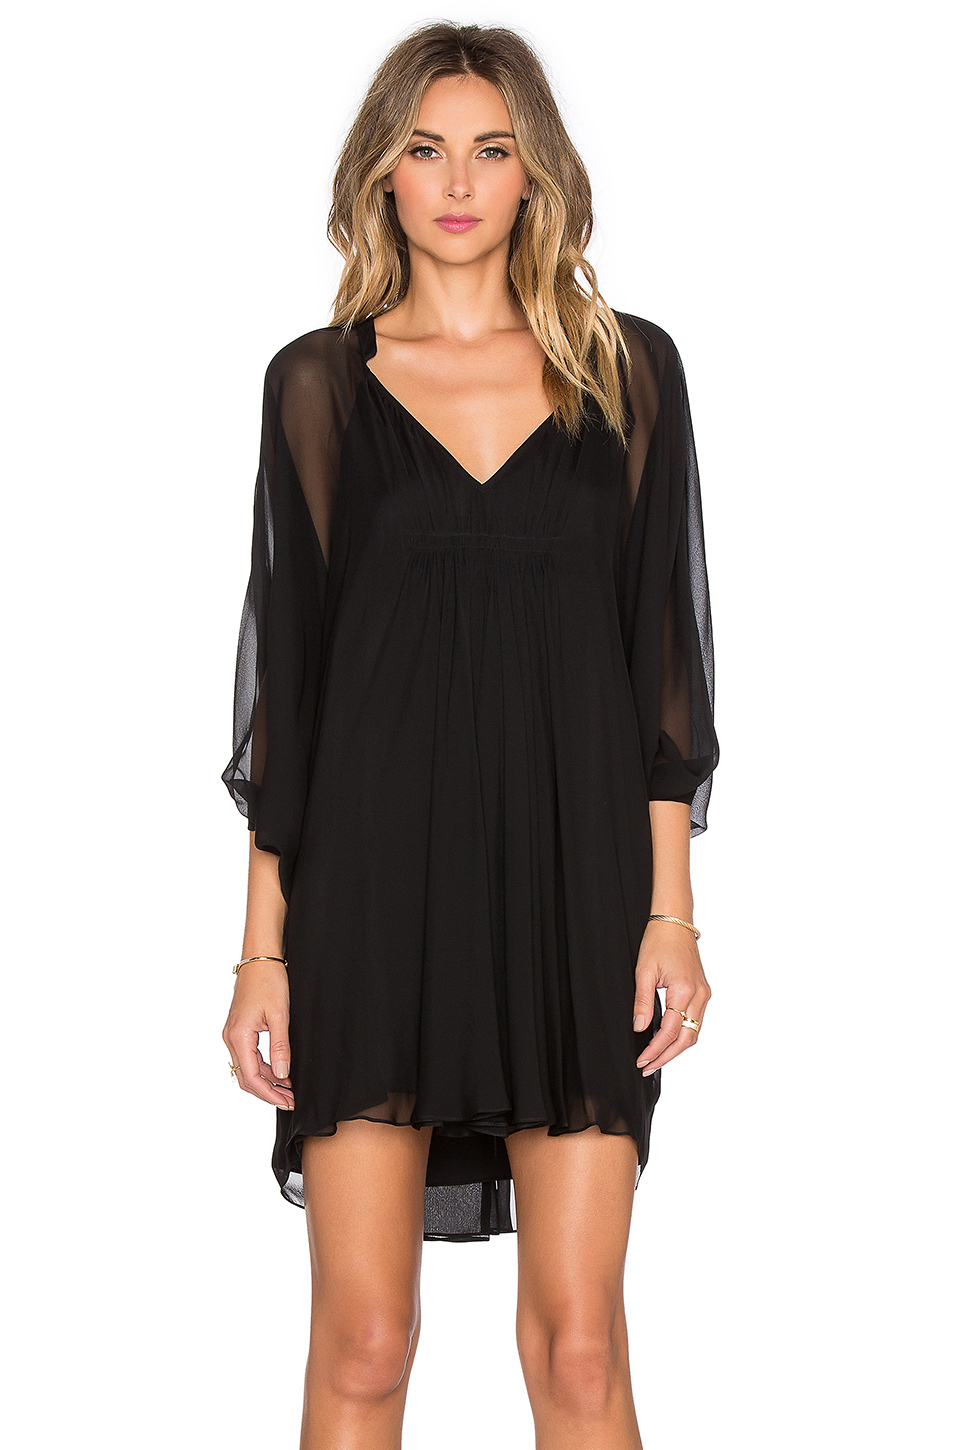 Lyst diane von furstenberg fleurette dress in black for Diane von furstenberg clothes